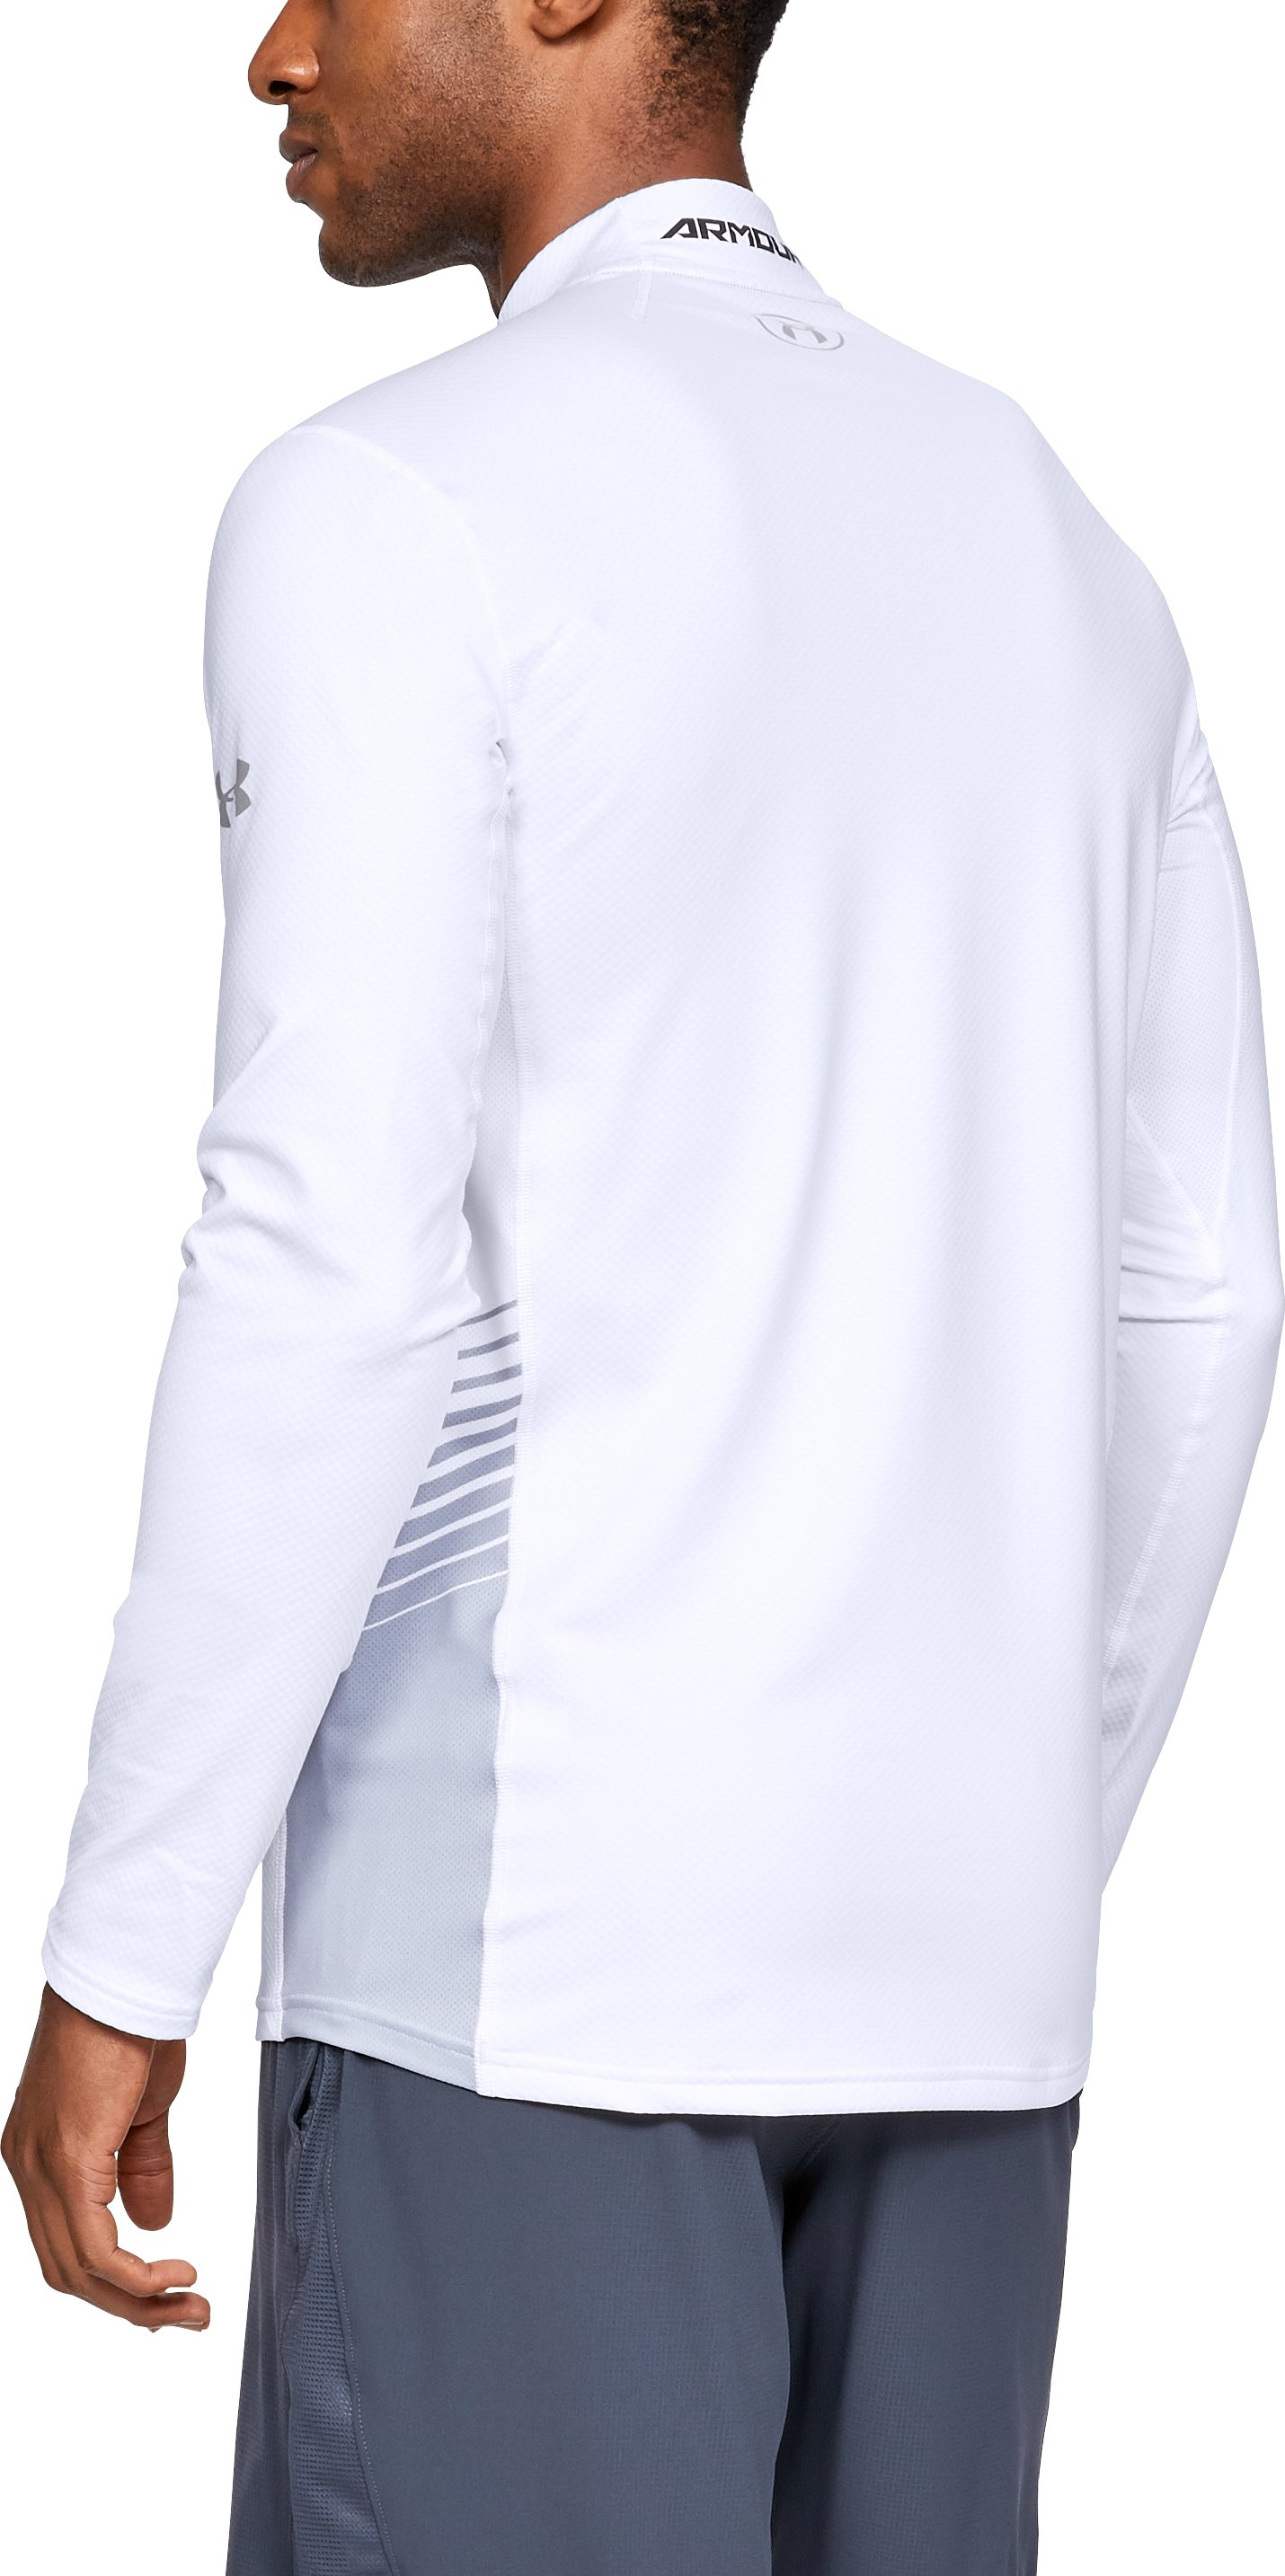 Men's ColdGear® Reactor Long Sleeve Shirt, White,